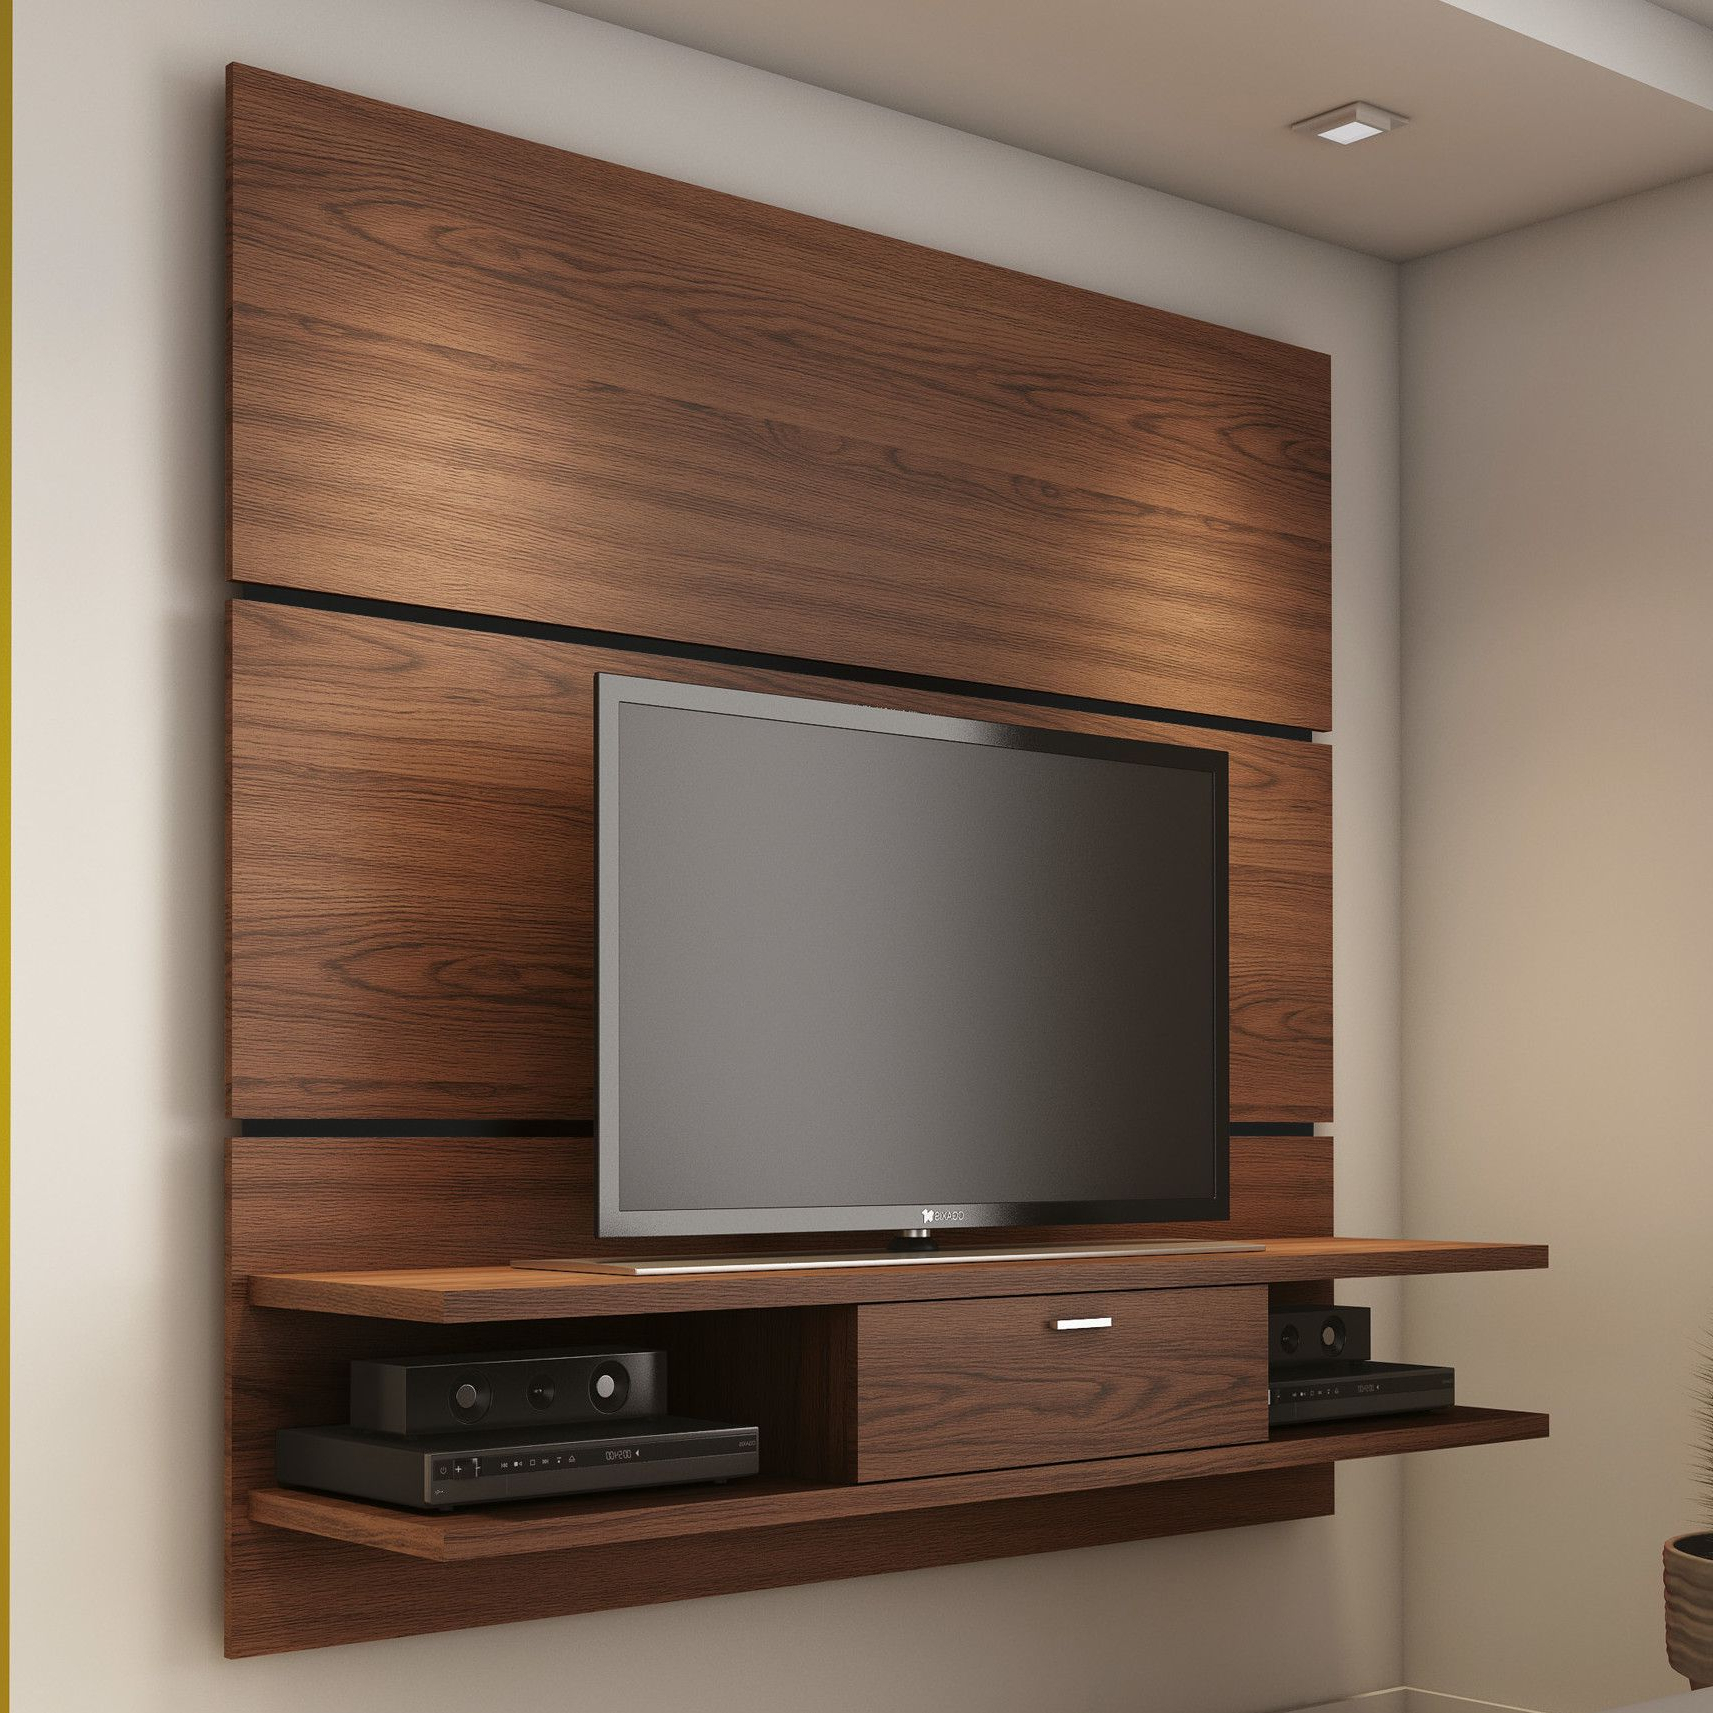 Most Popular Small Bedroom Tv Unit Wooden Wall Mounted Tv Stand For Bedroom In With Regard To Stylish Tv Cabinets (View 8 of 20)